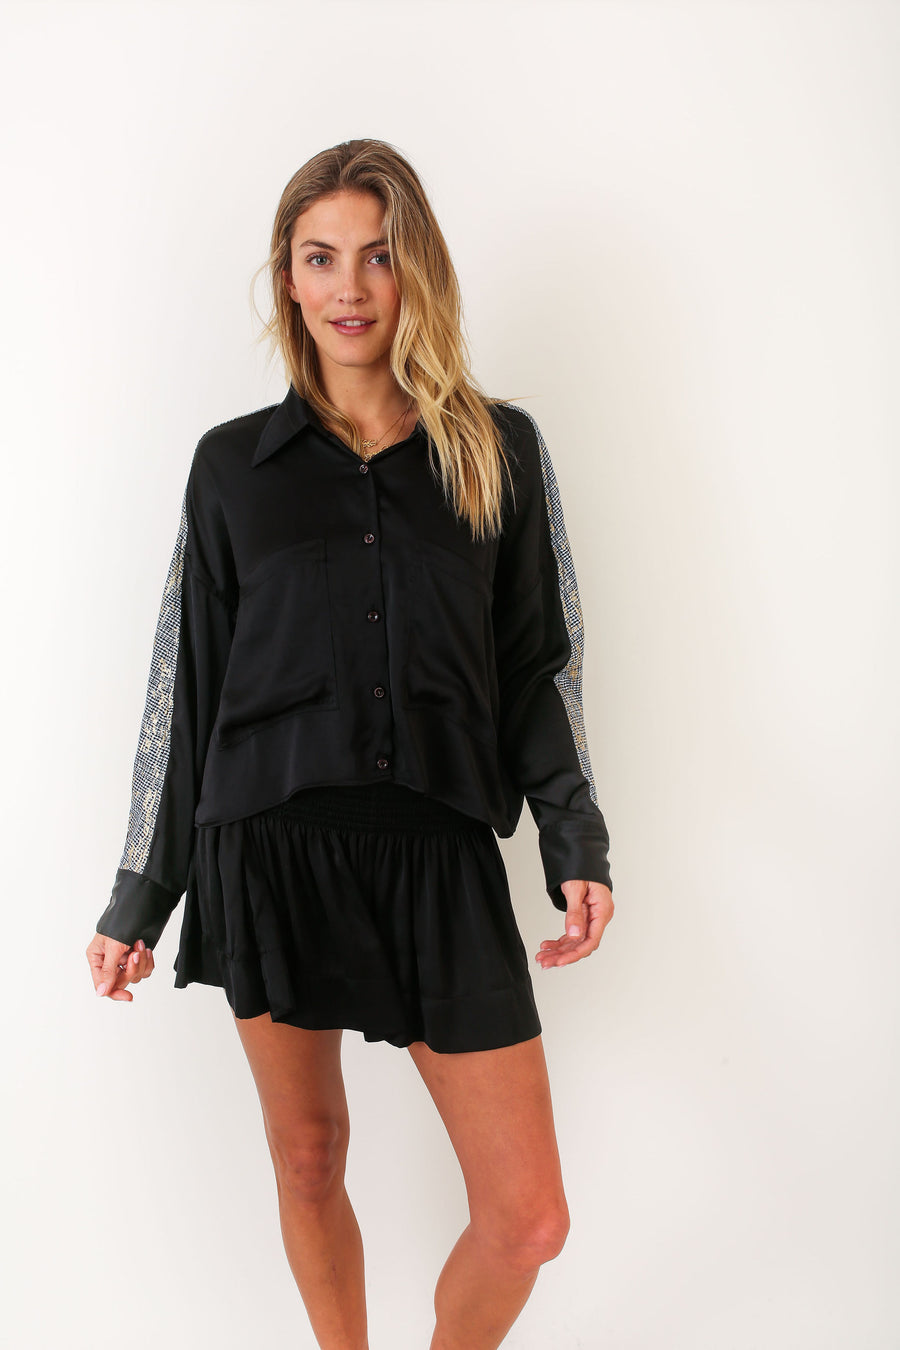 LYLE TOP BLACK POLYSATIN